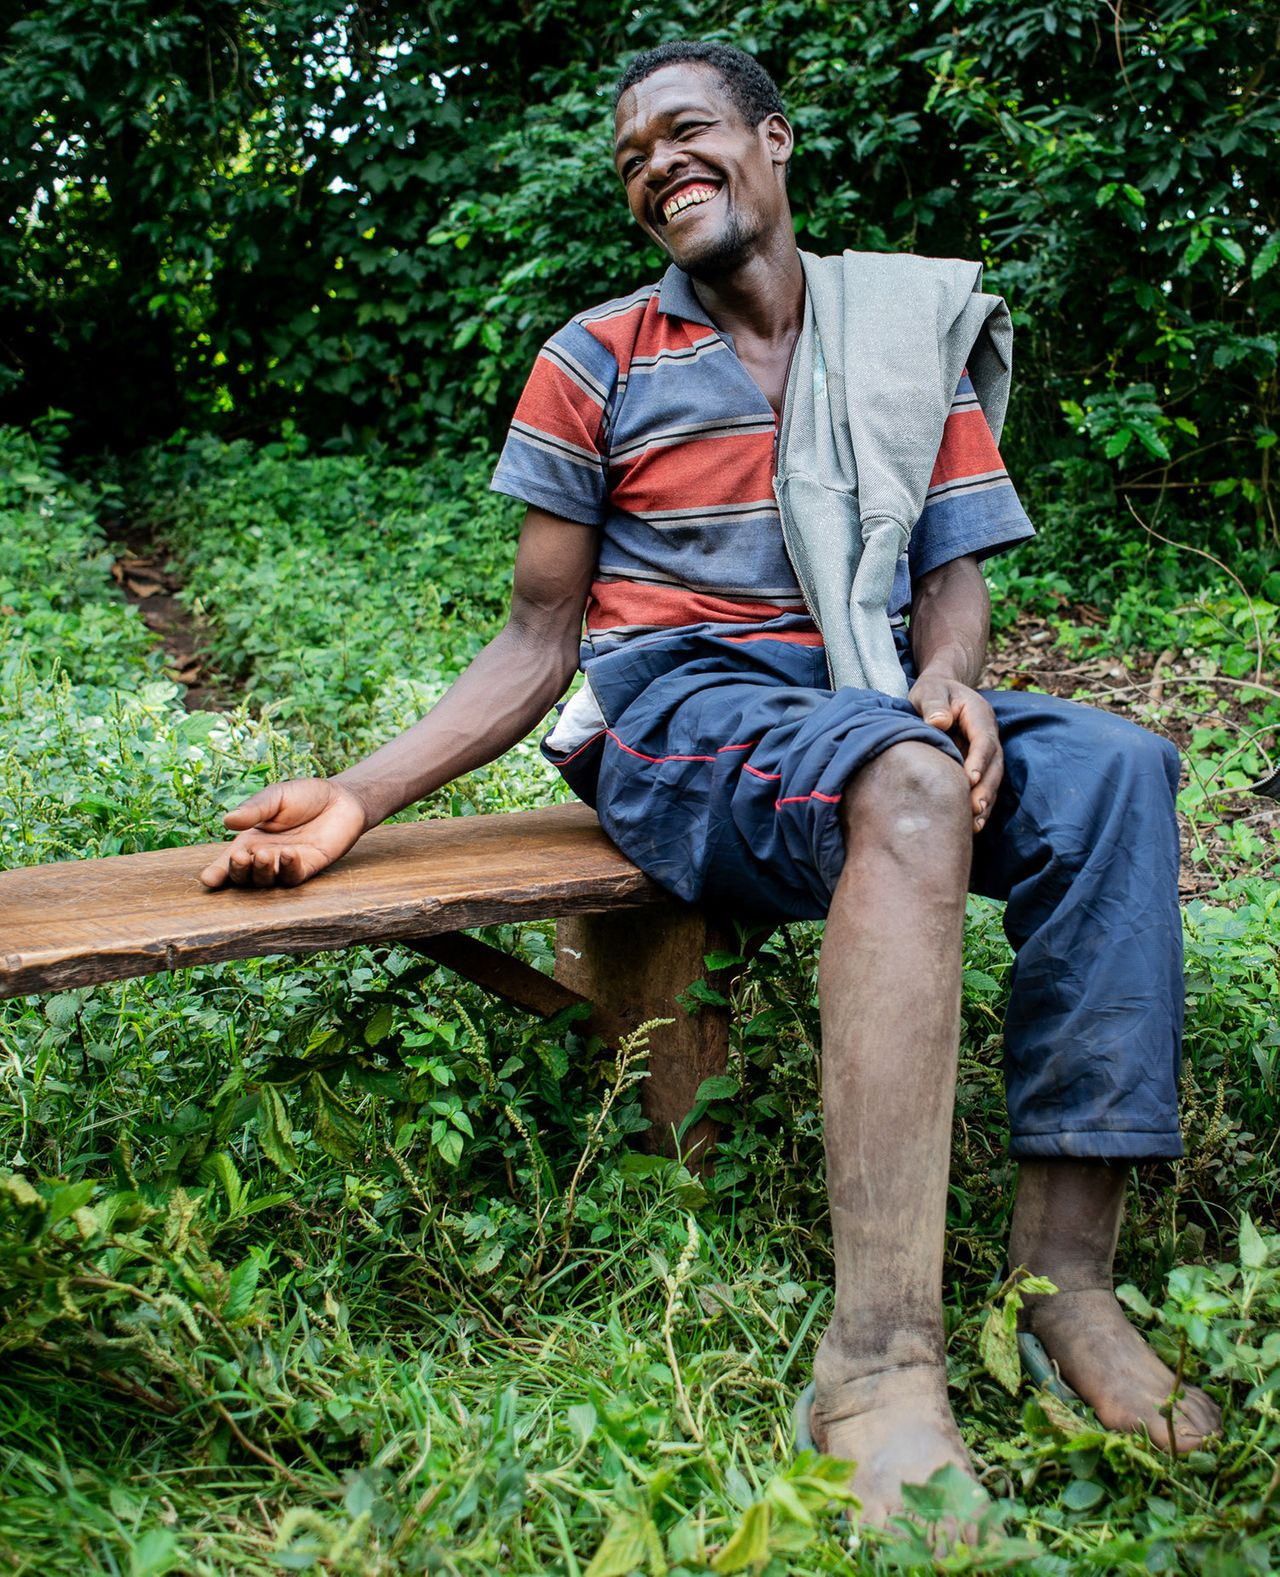 Tesfaye Bezabh in the village of Gesabale in southern Ethiopia has mild podoconiosis and says he rarely wears shoes.